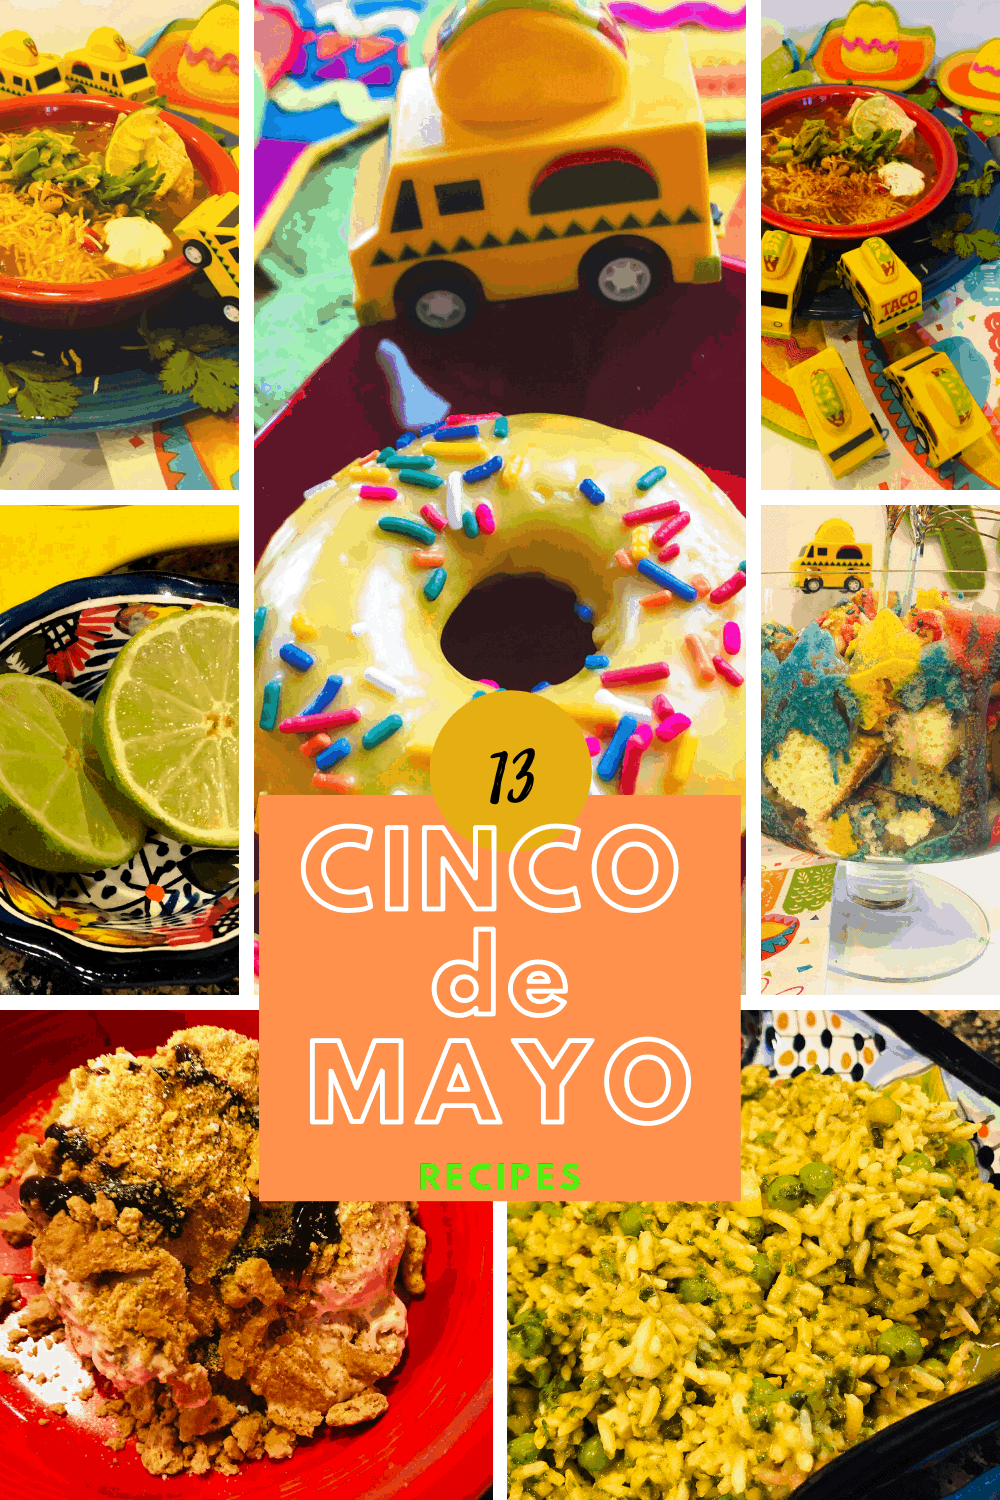 Cinco de mayo party foods including lime wedges